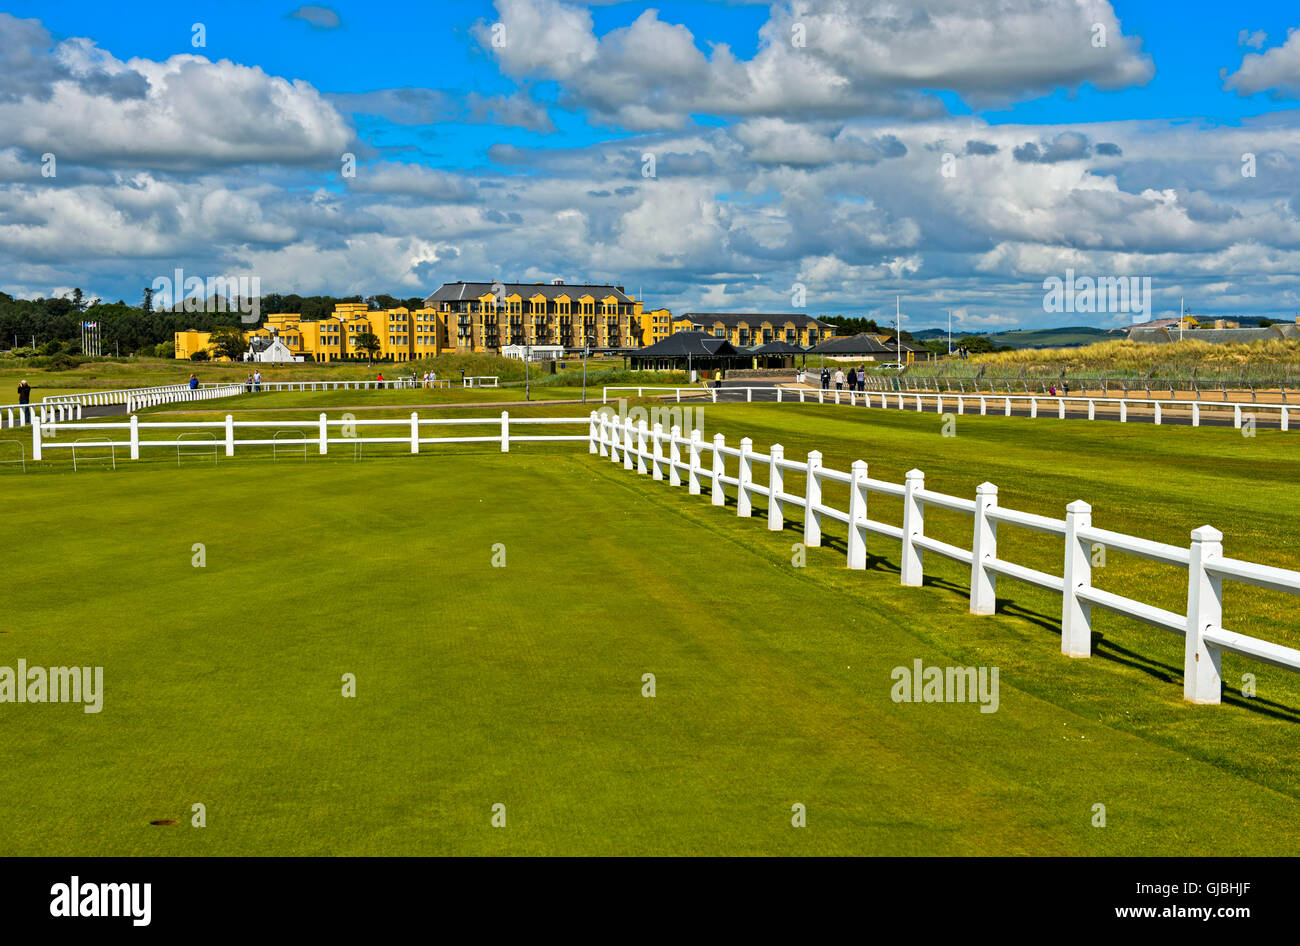 Old Course, Old Course Hotel behind, golf course St Andrews Links, St Andrews, Fife, Scotland, Great Britain - Stock Image